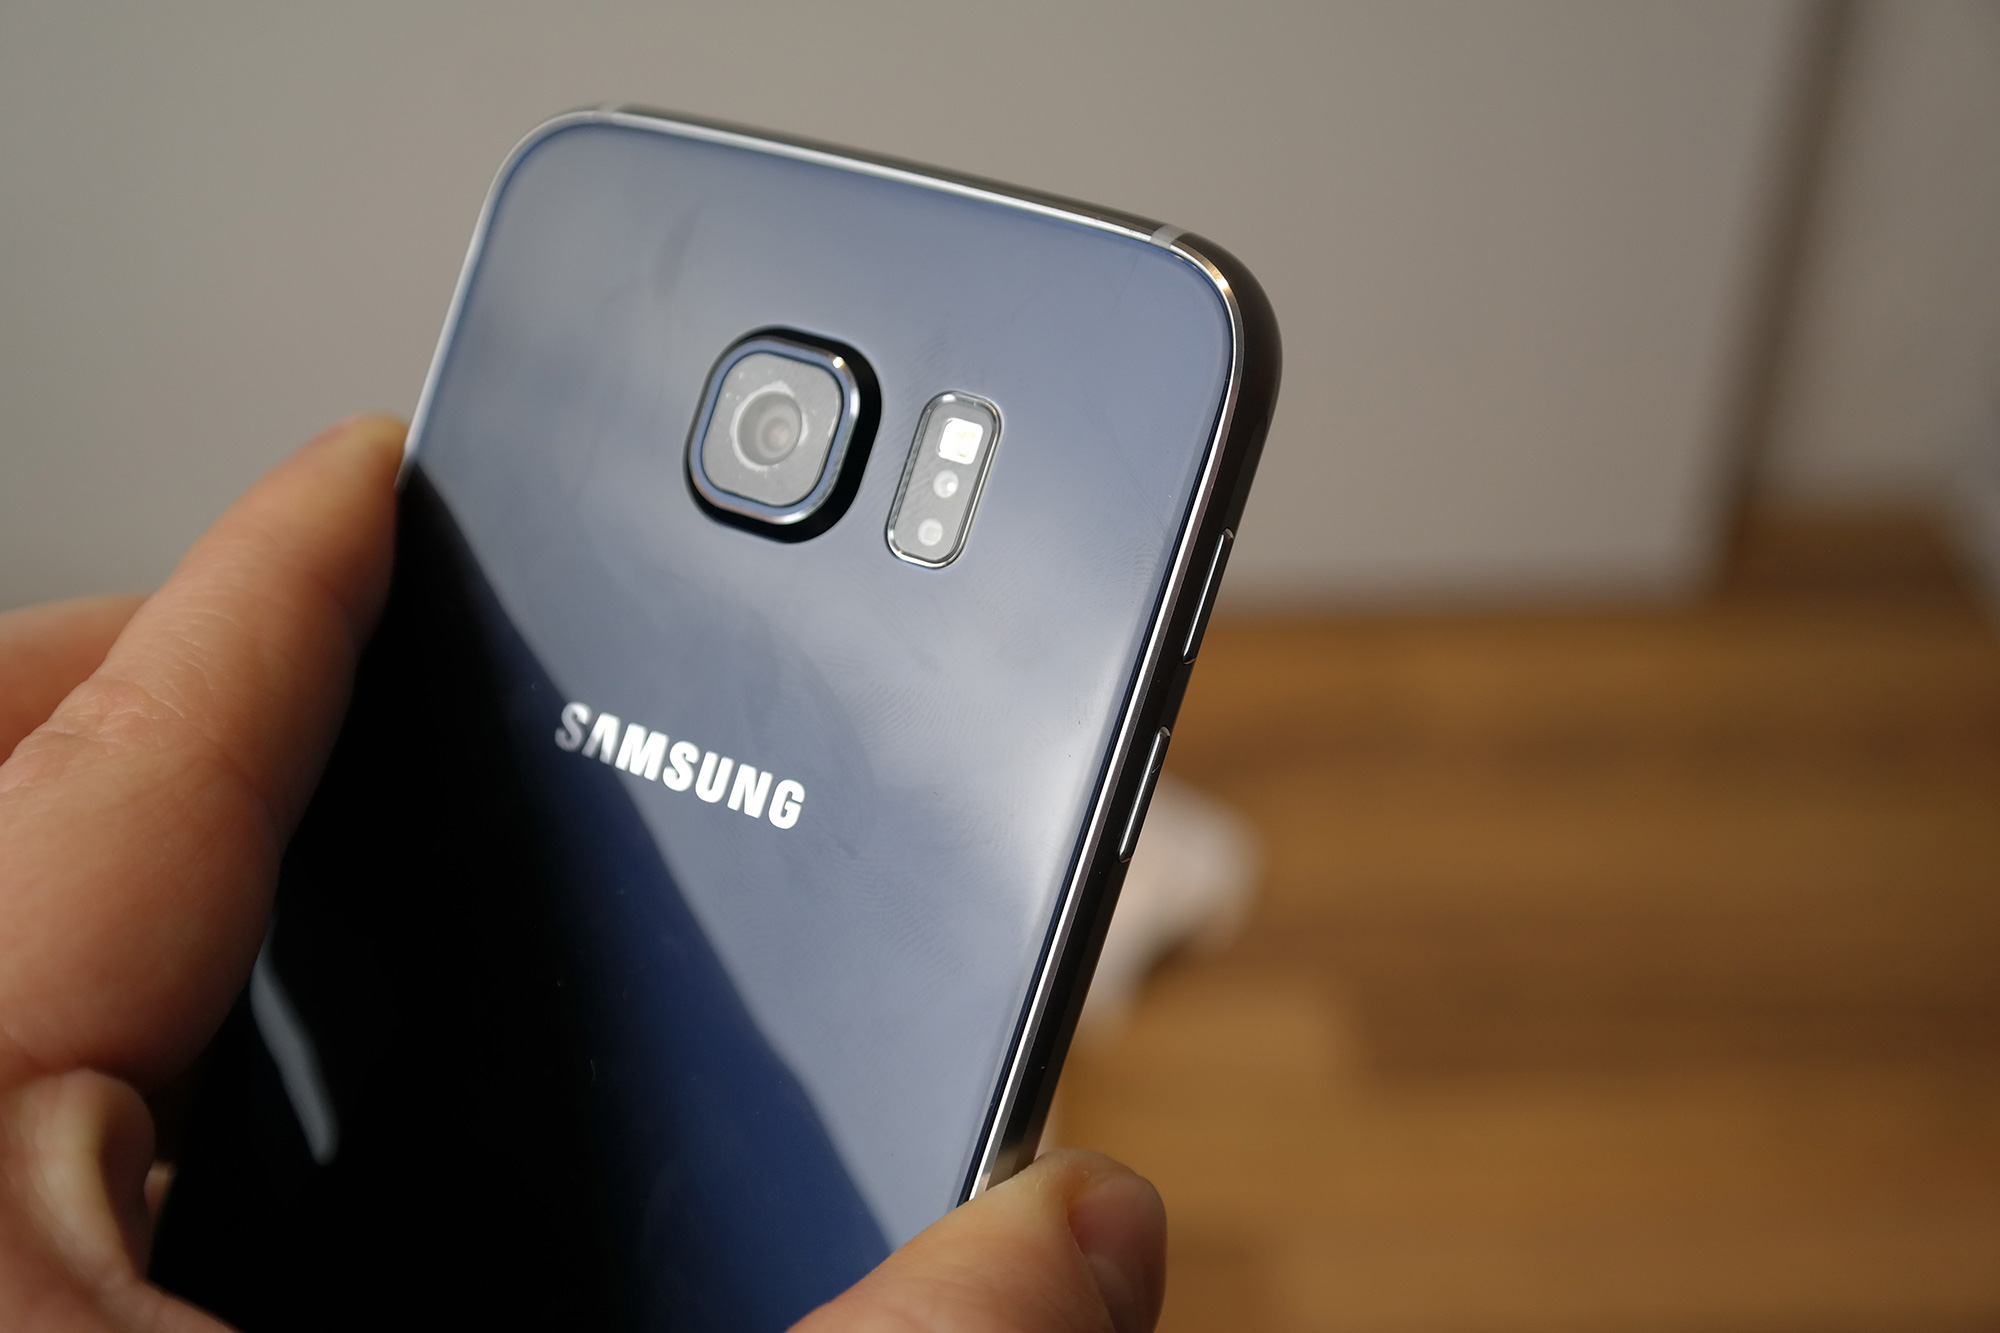 Samsung_Galaxy_S6_Unboxing_4